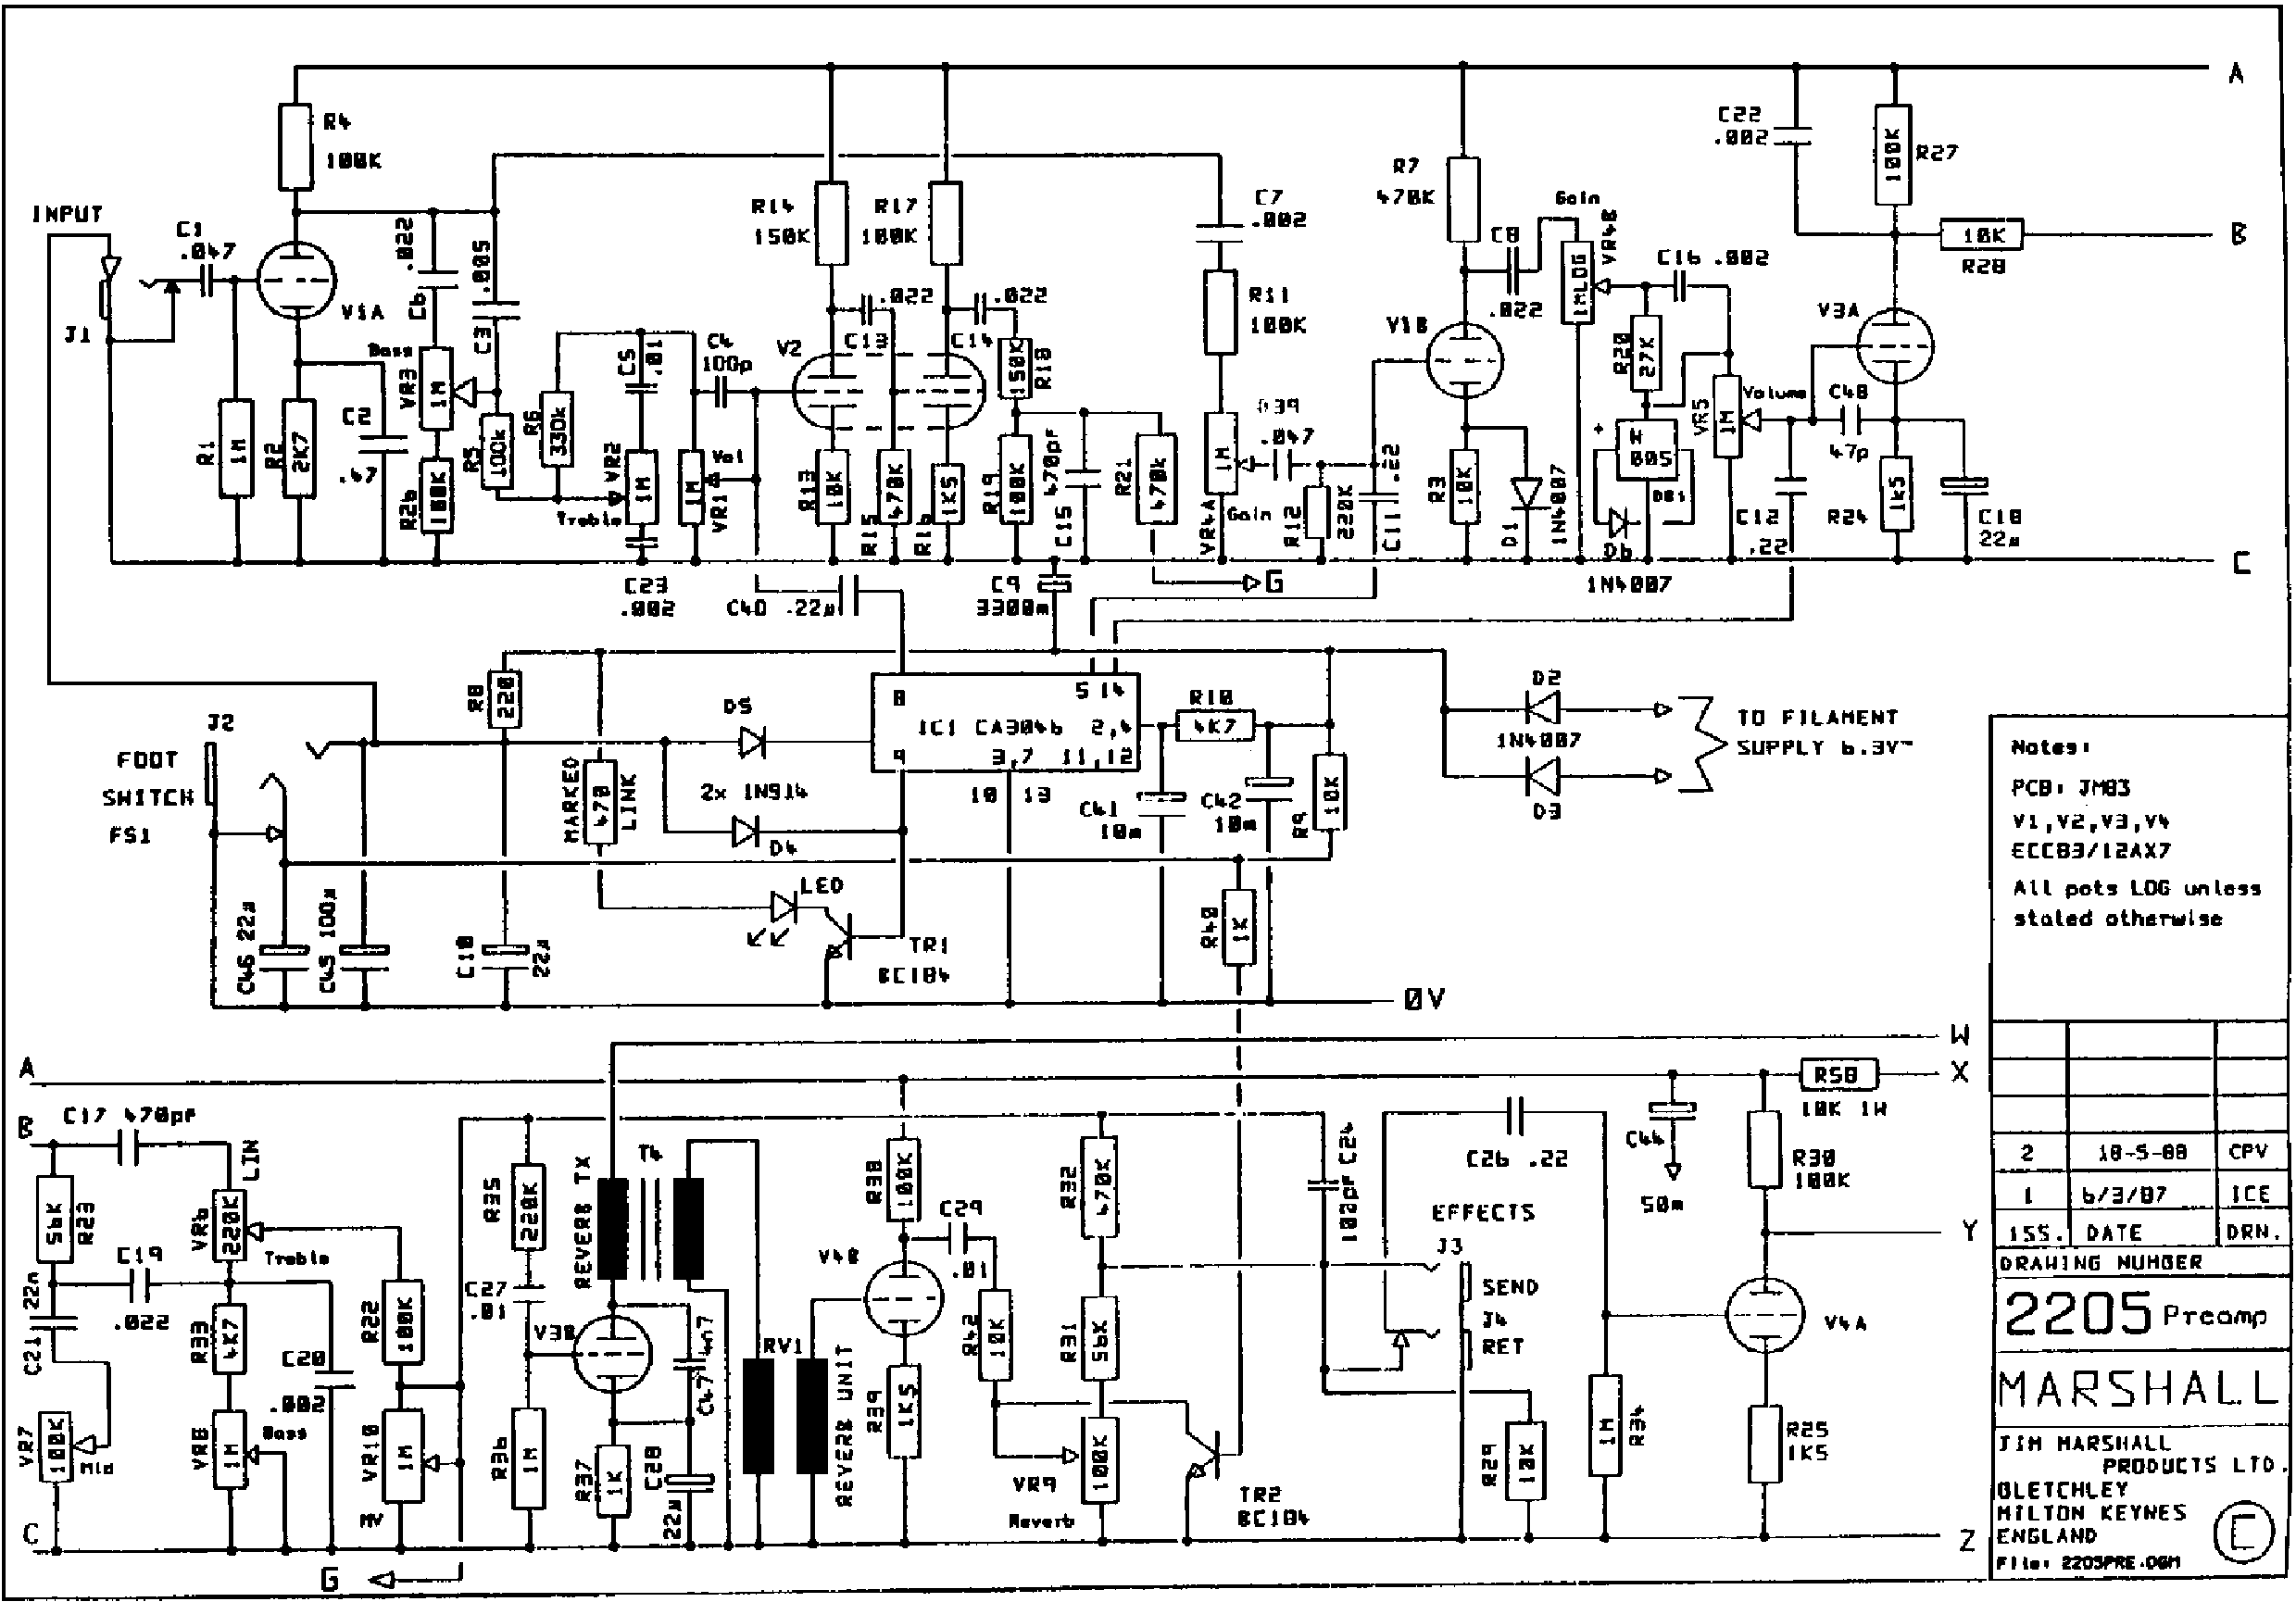 MARSHALL JCM800 SPLITCH 50W 2205 Service Manual download, schematics on slo-100 schematic, bass tube preamp schematic, circuit diagram, jtm45 schematic, bassman schematic, marshall schematic, block diagram, 1987x schematic, functional flow block diagram, zvex sho schematic, 3pdt schematic, amp schematic, jcm 900 schematic, soldano schematic, ac30 schematic, irig schematic, overdrive schematic, technical drawing, transformer schematic, fender schematic, peavey schematic, piping and instrumentation diagram, tube map, 5e3 schematic, dsl schematic, one-line diagram, guitar schematic,